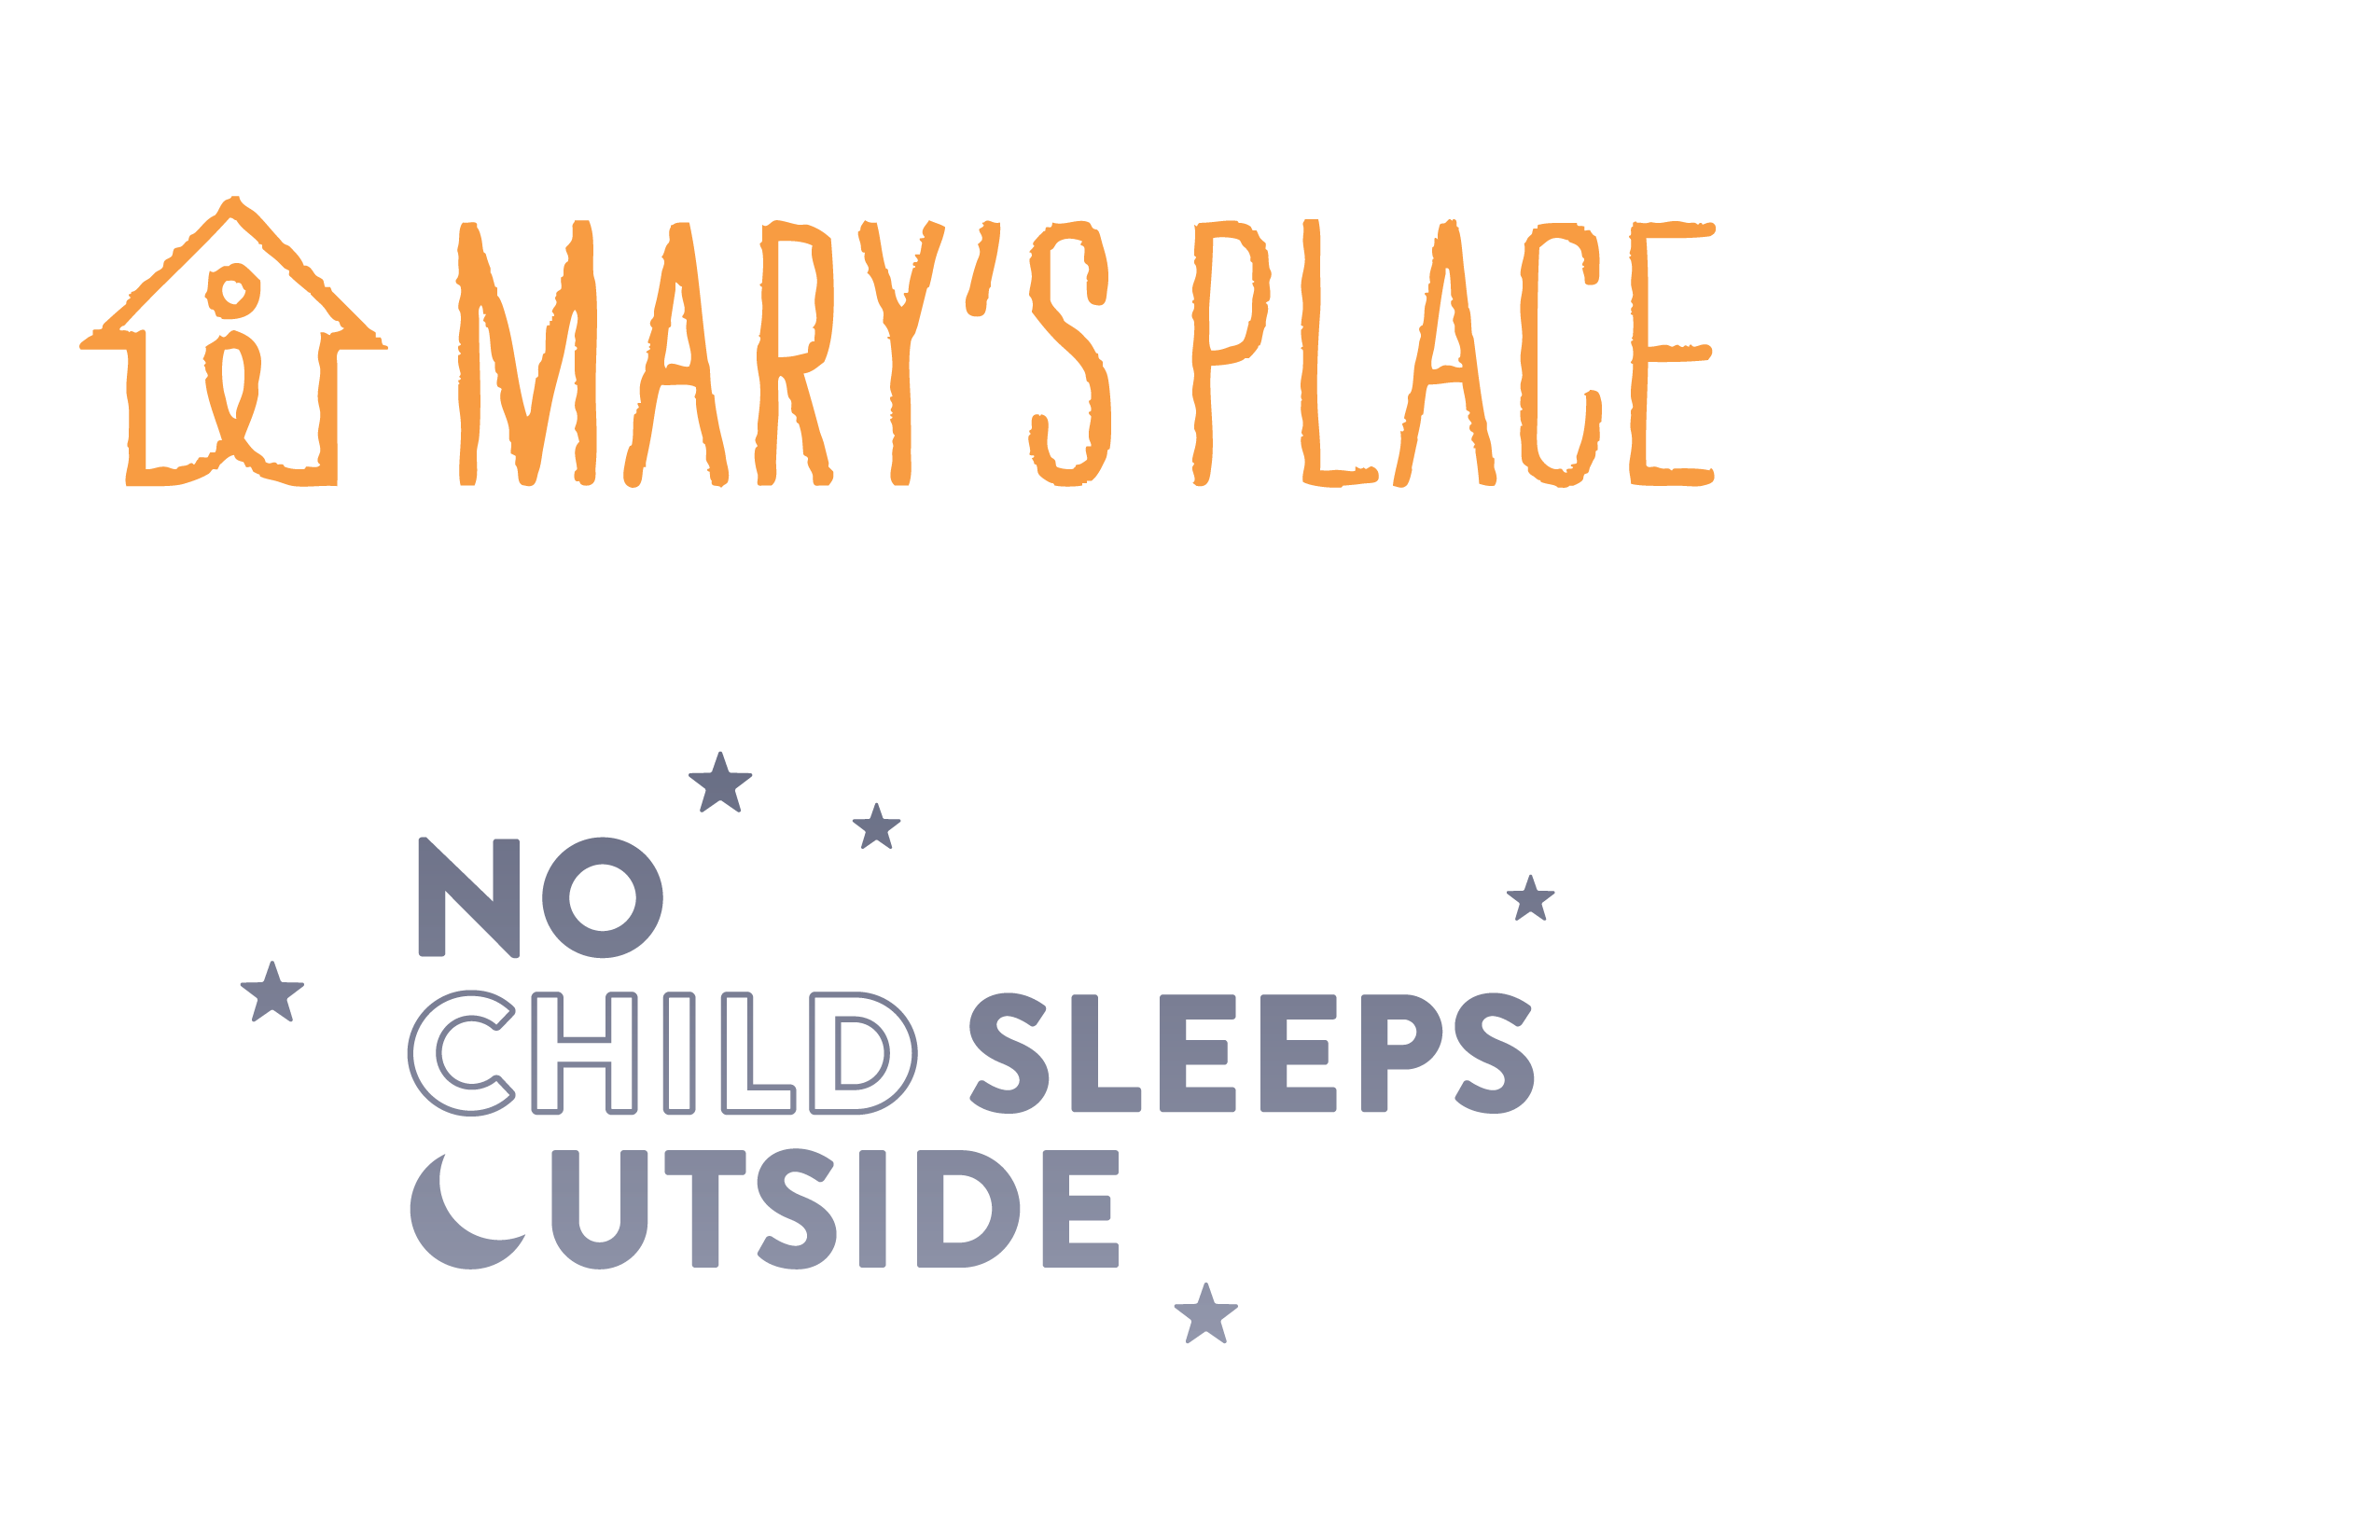 Starbucks Night Mary's & No Child